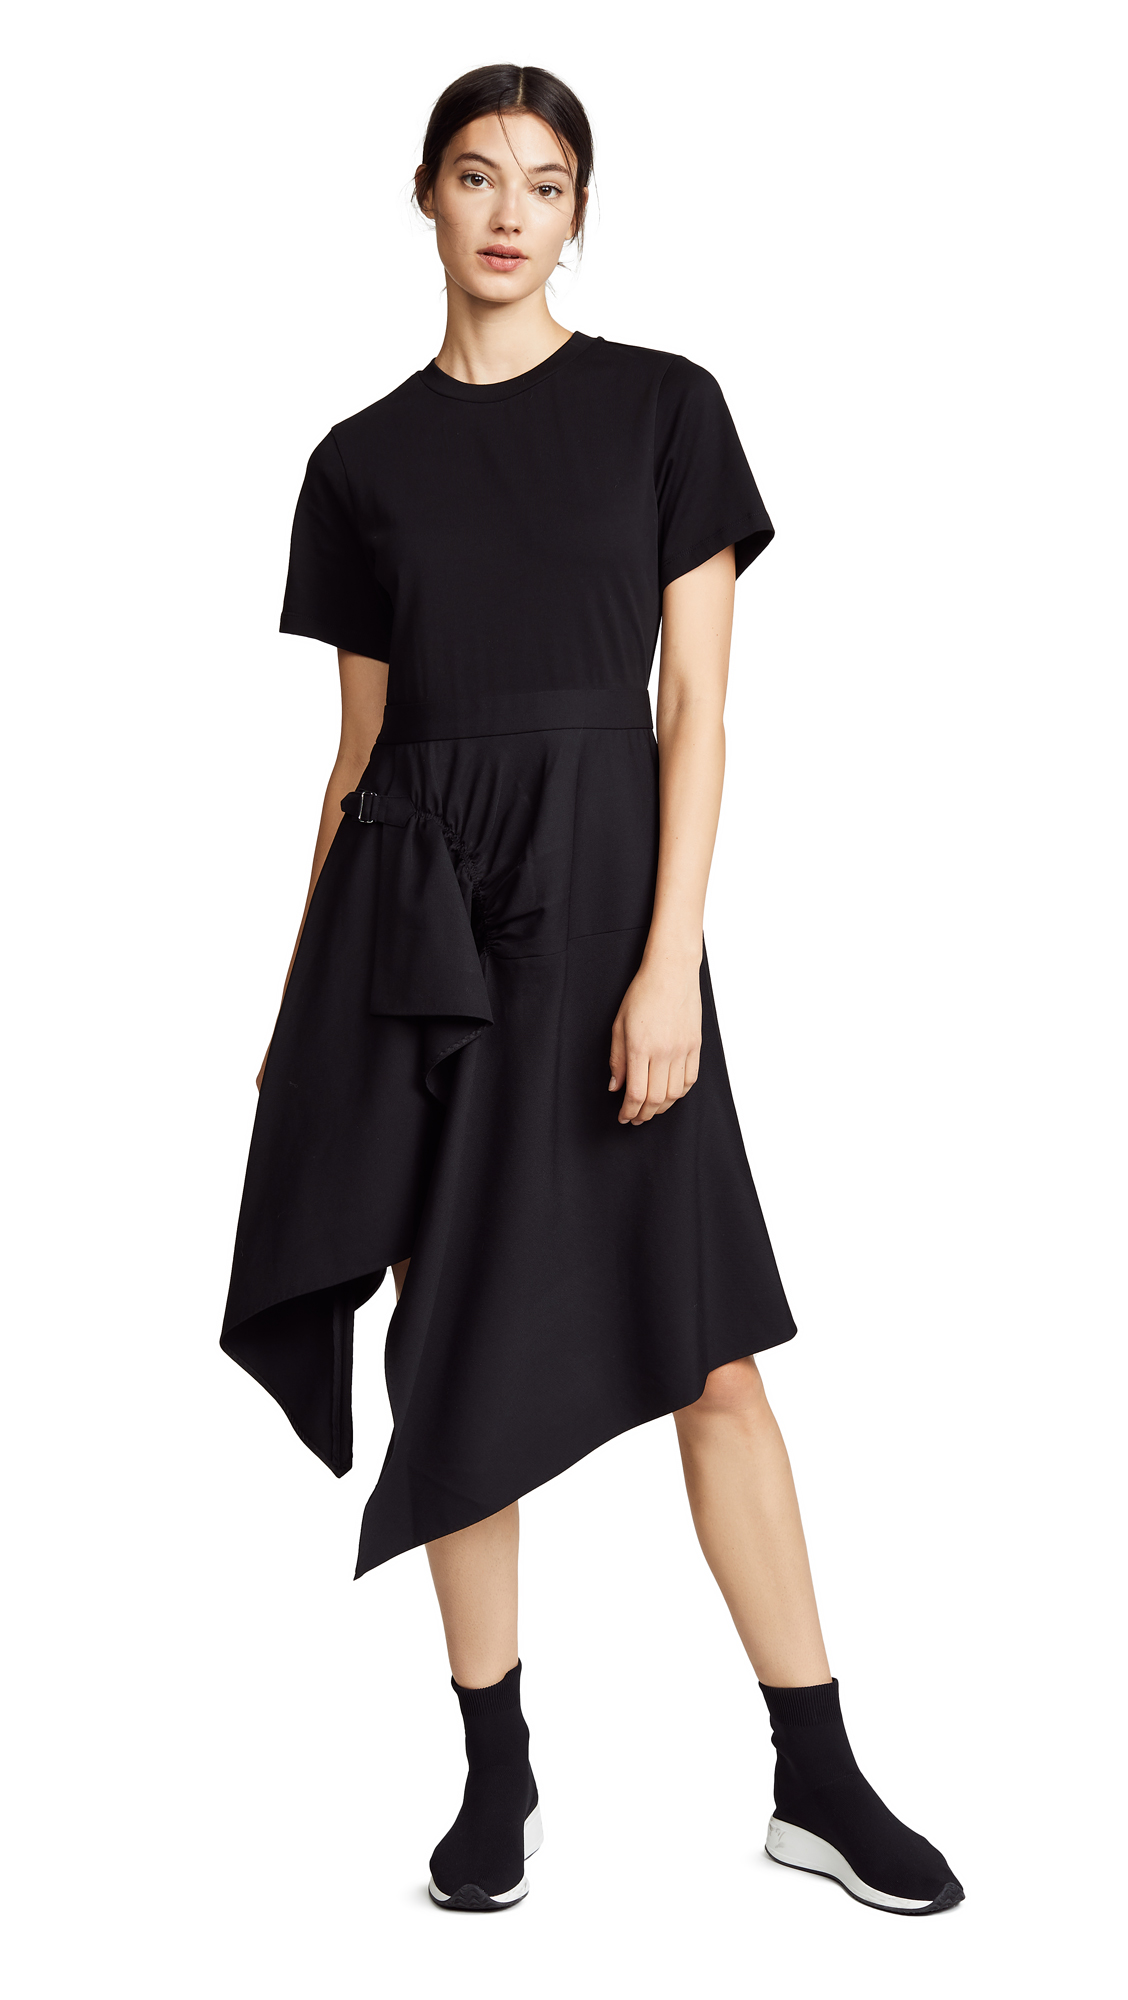 3.1 Phillip Lim Handkerchief Dress - Black